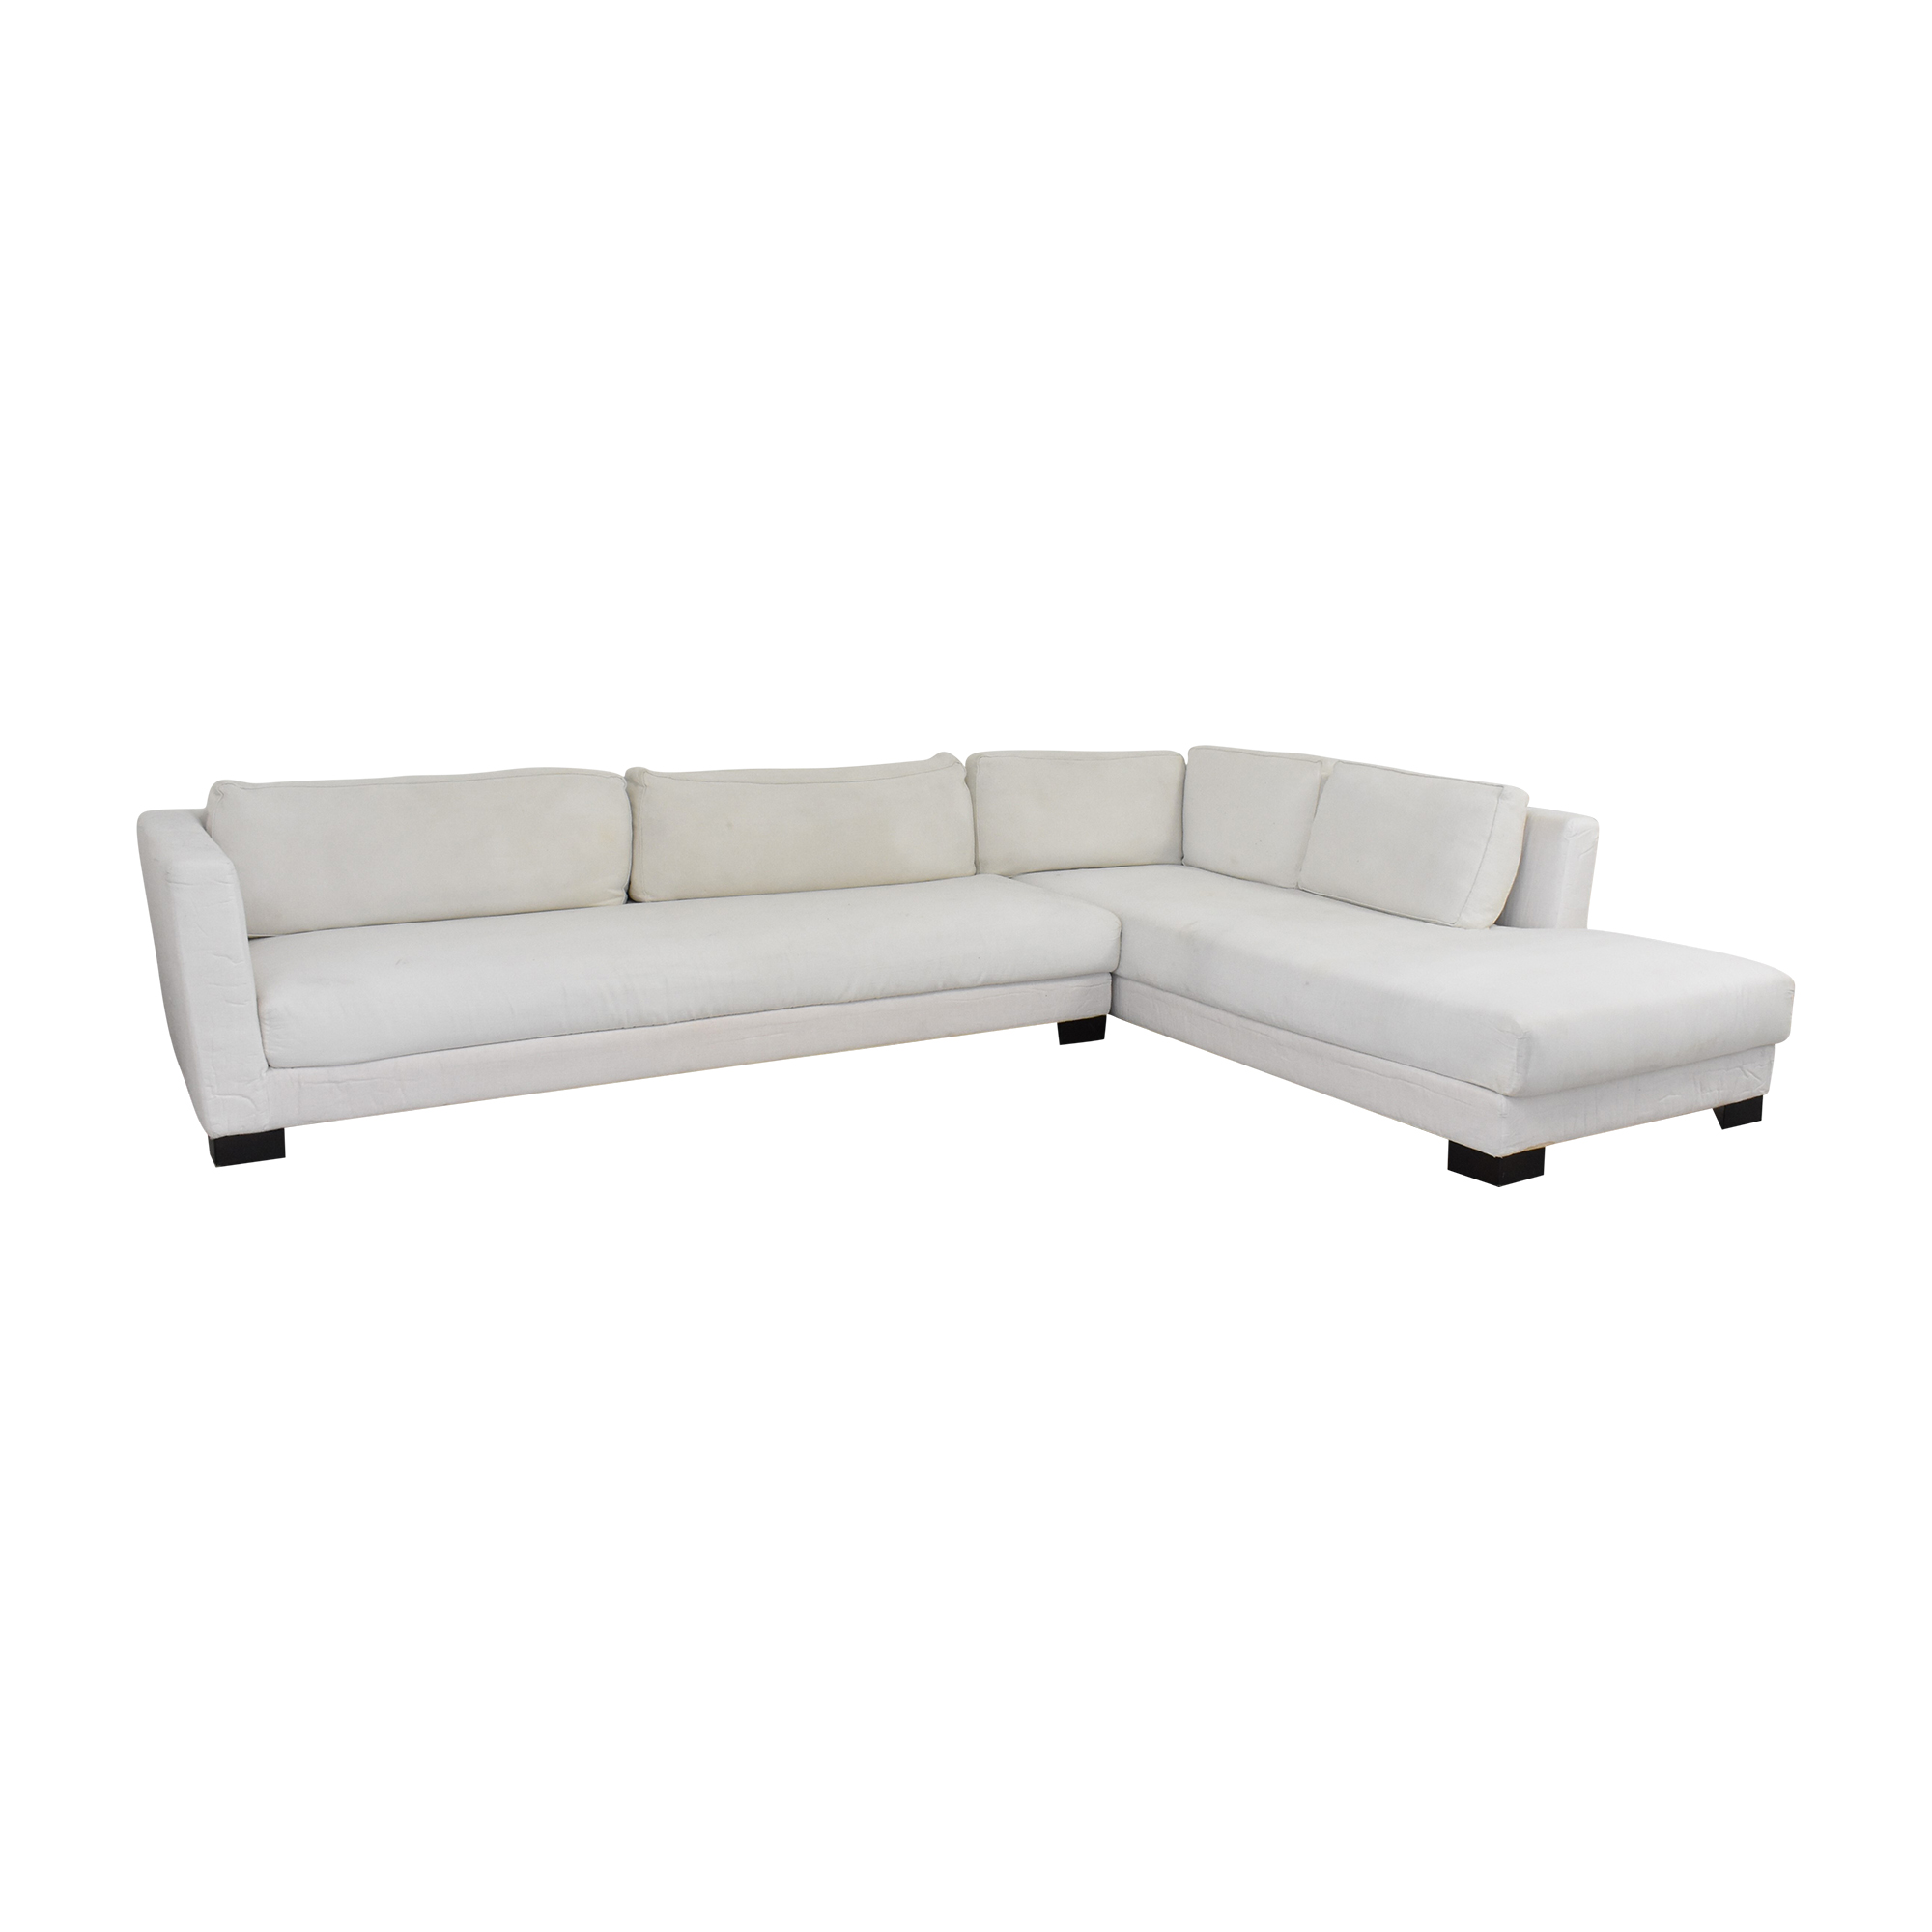 Verzelloni Verzelloni Link Sectional Sofa with Chaise dimensions